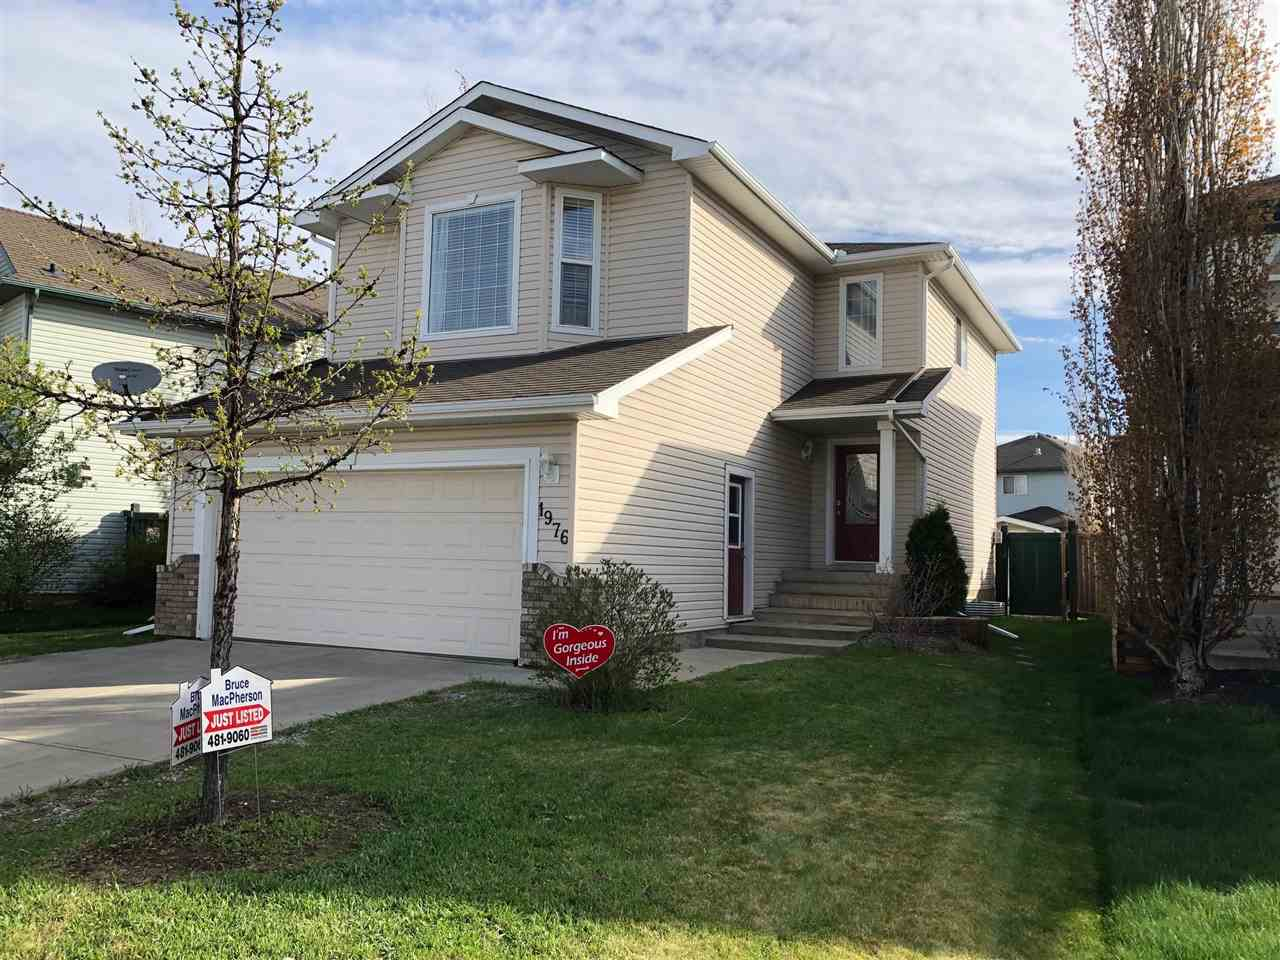 MLS® listing #E4157502 for sale located at 1976 GARNETT Way